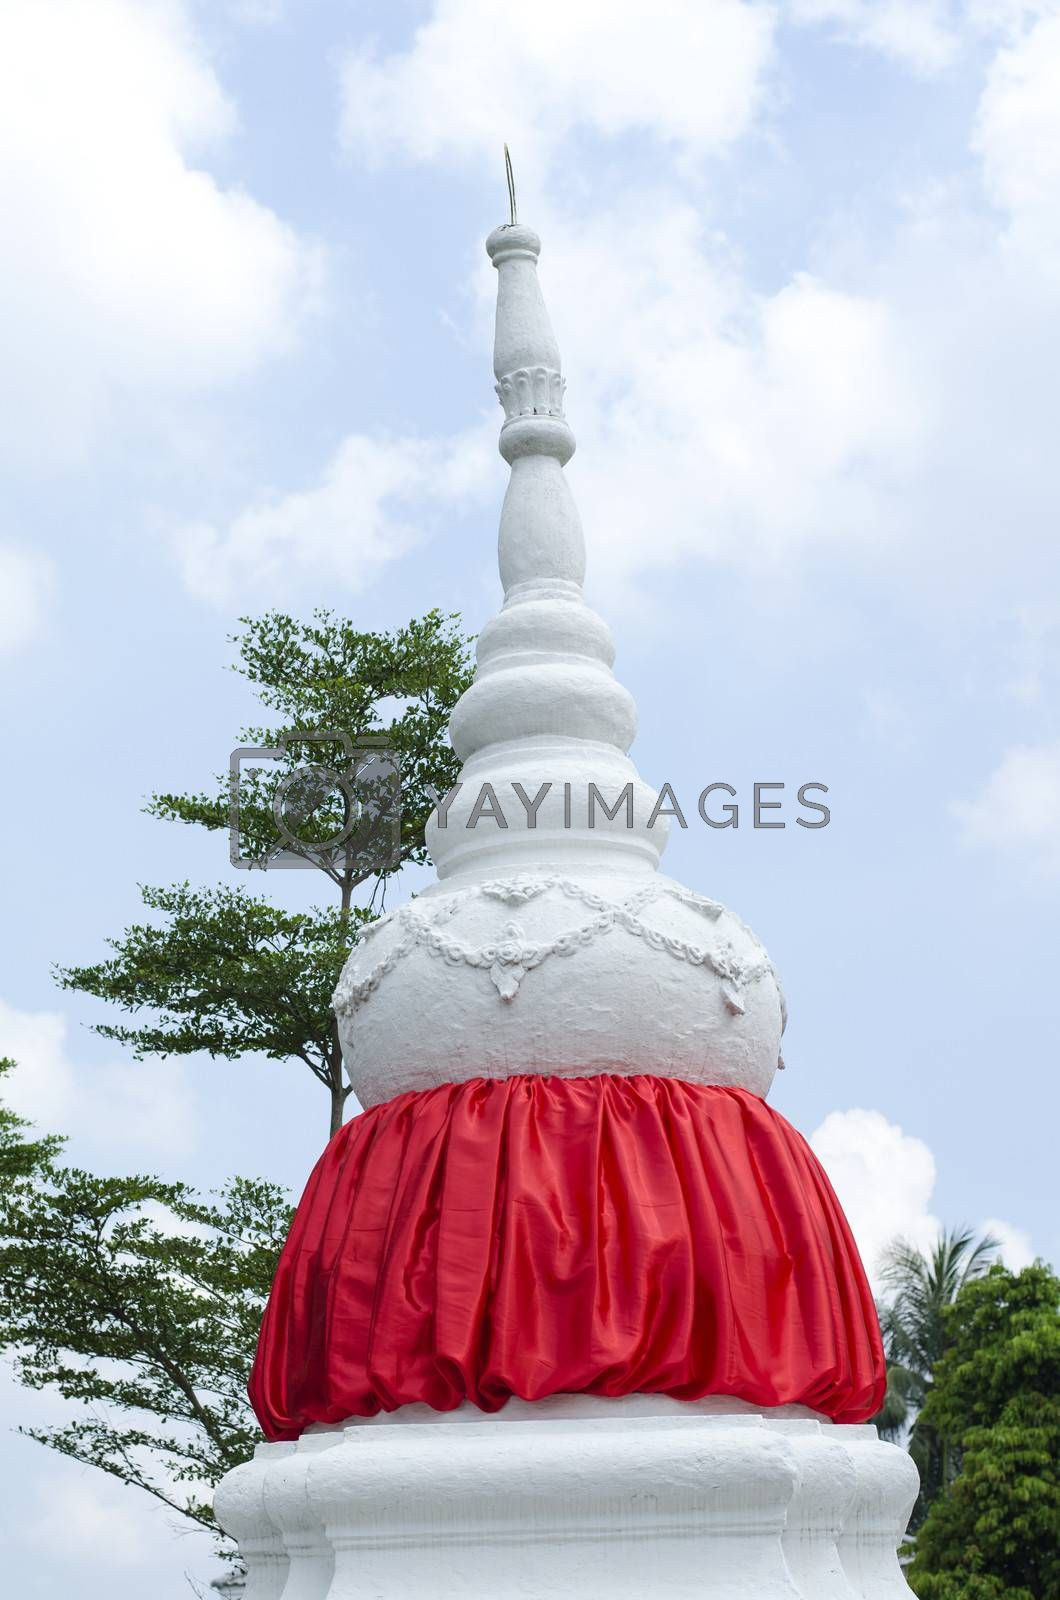 white stppa temple in thailand on sky background